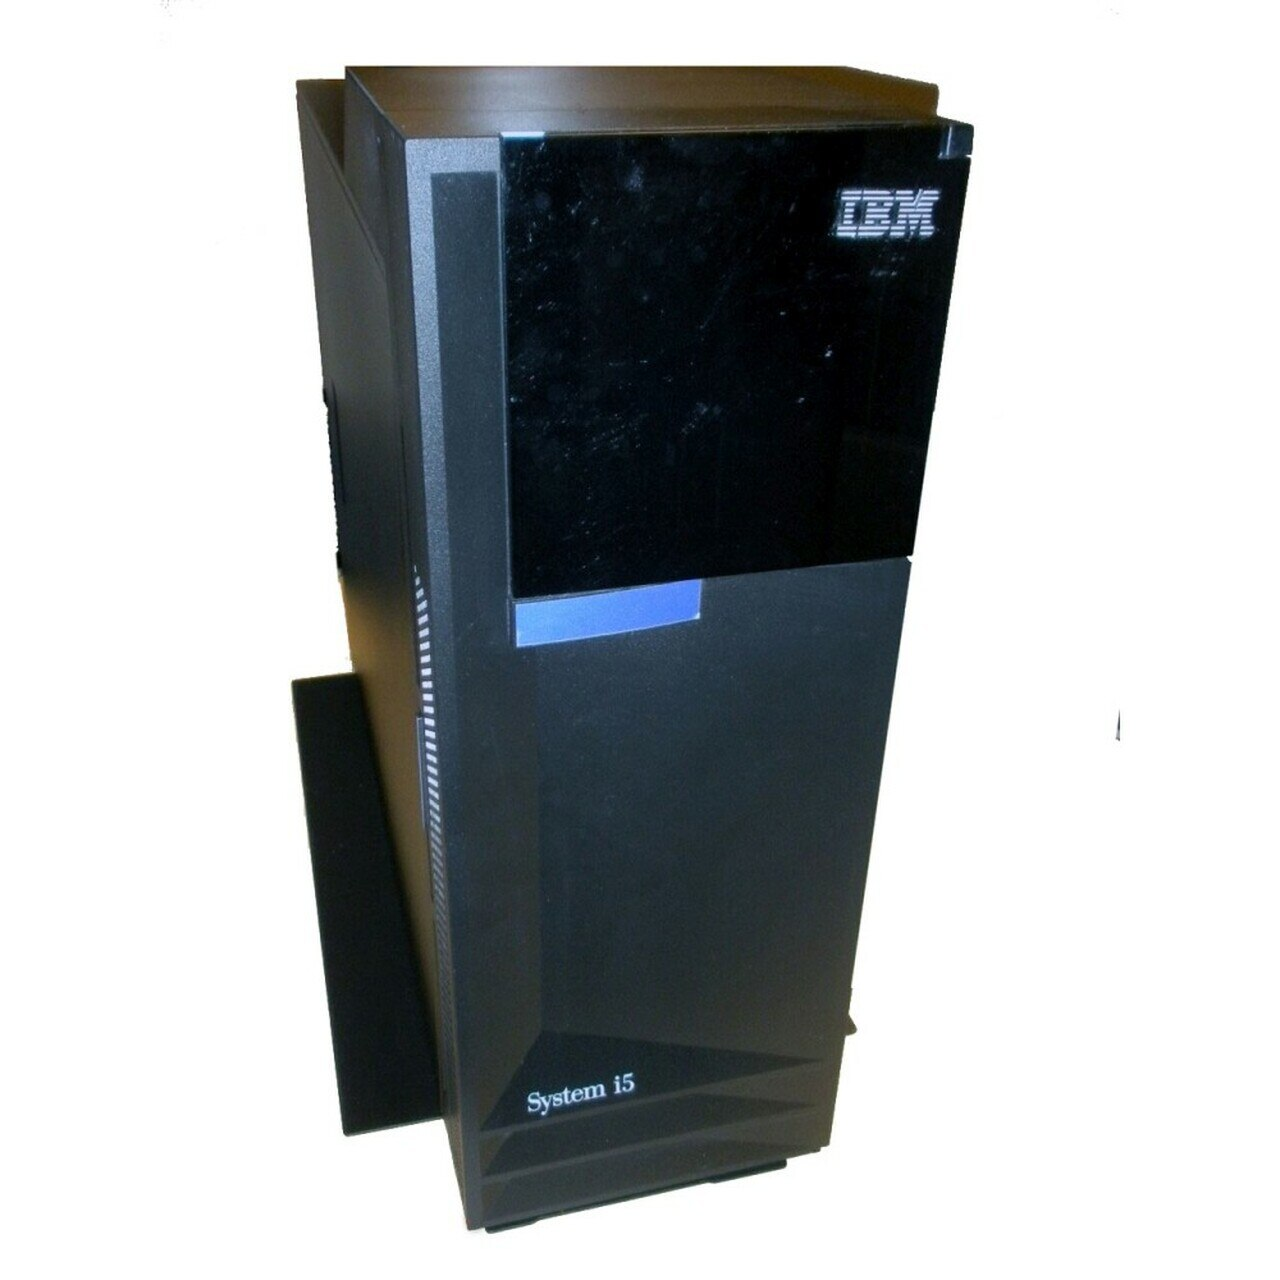 Buy & save on IBM 9406-520 Servers from your trusted partners at Flagship Technologies. Buy Now! Or browse our revolving inventory.